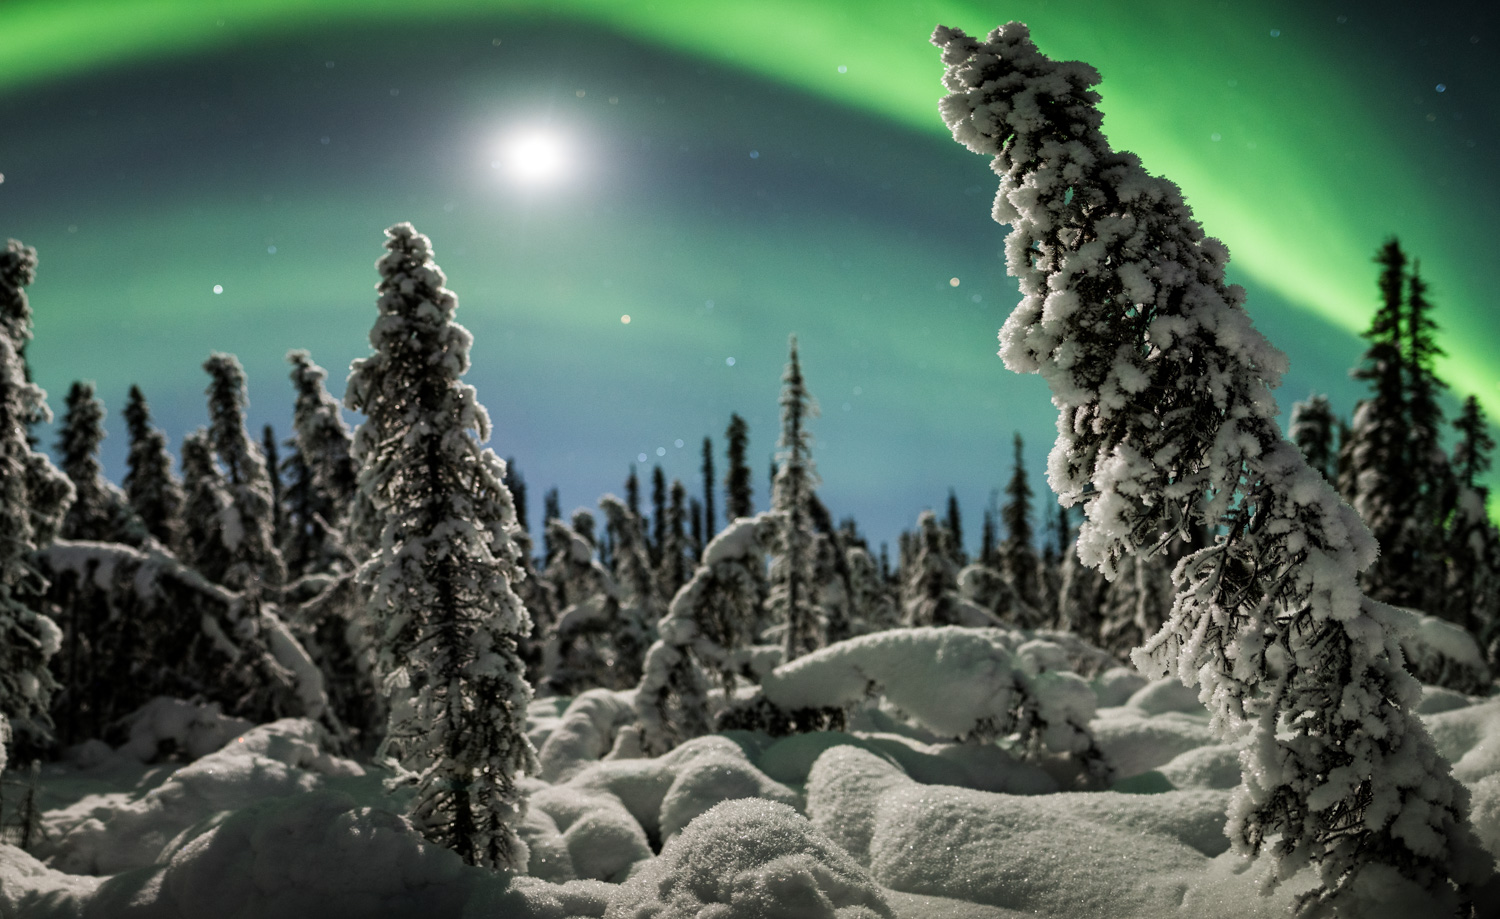 Panorama, How-to, Foreground, Photography, Lessons, Northern Lights, Mountains, Cannery